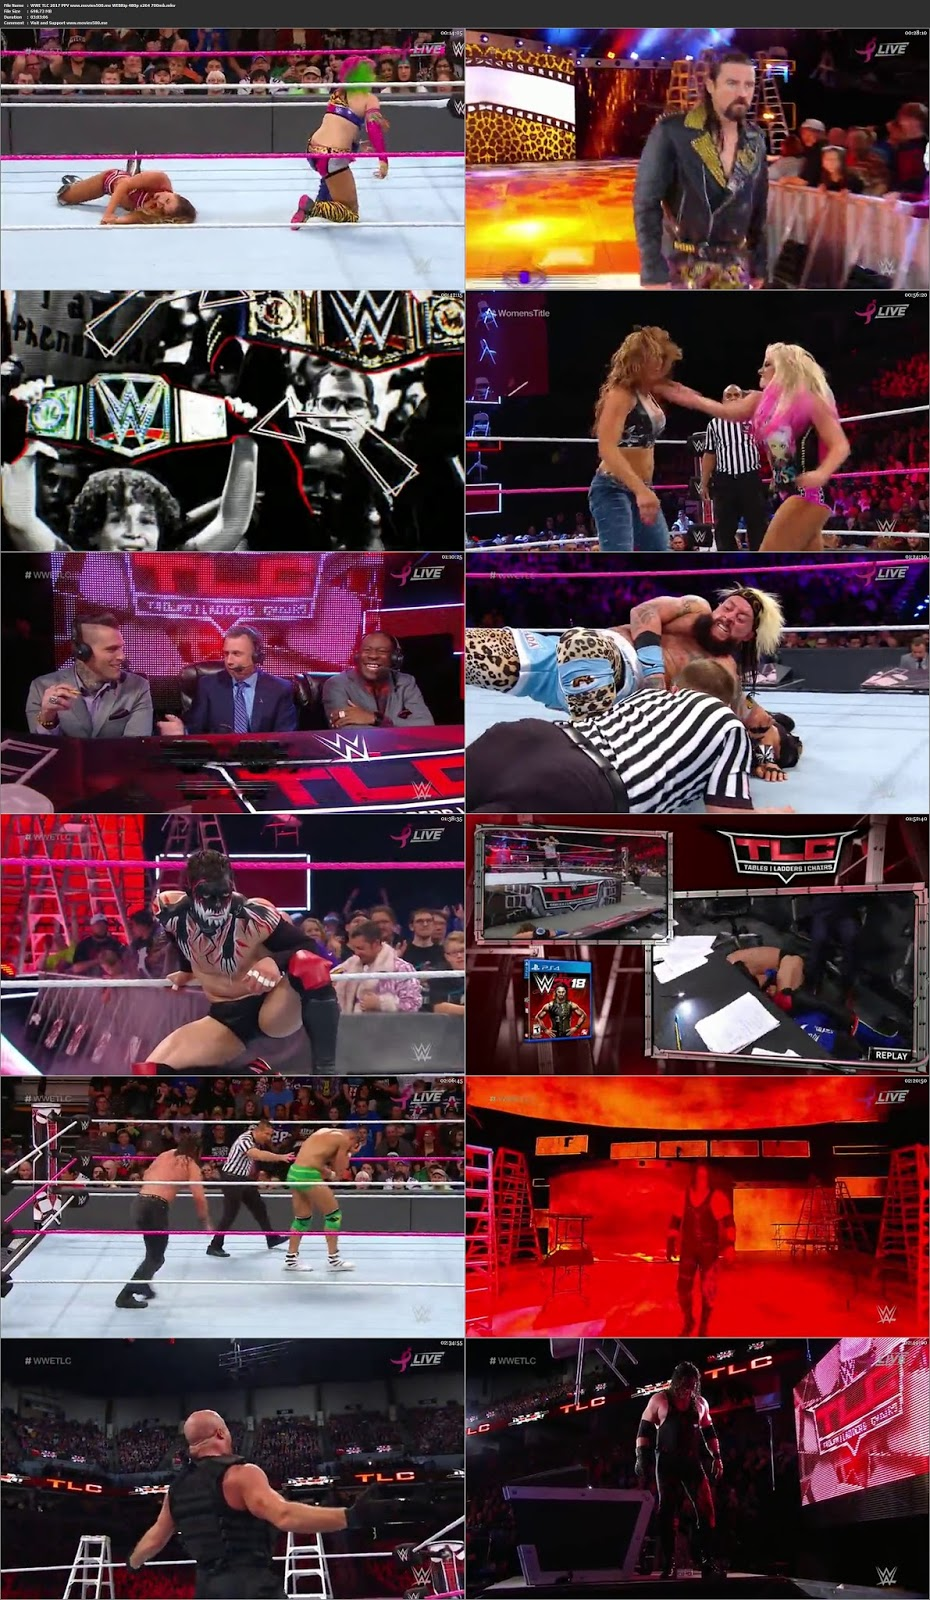 WWE TLC 2017 Full Wrestling Show WEBRip 480p at softwaresonly.com